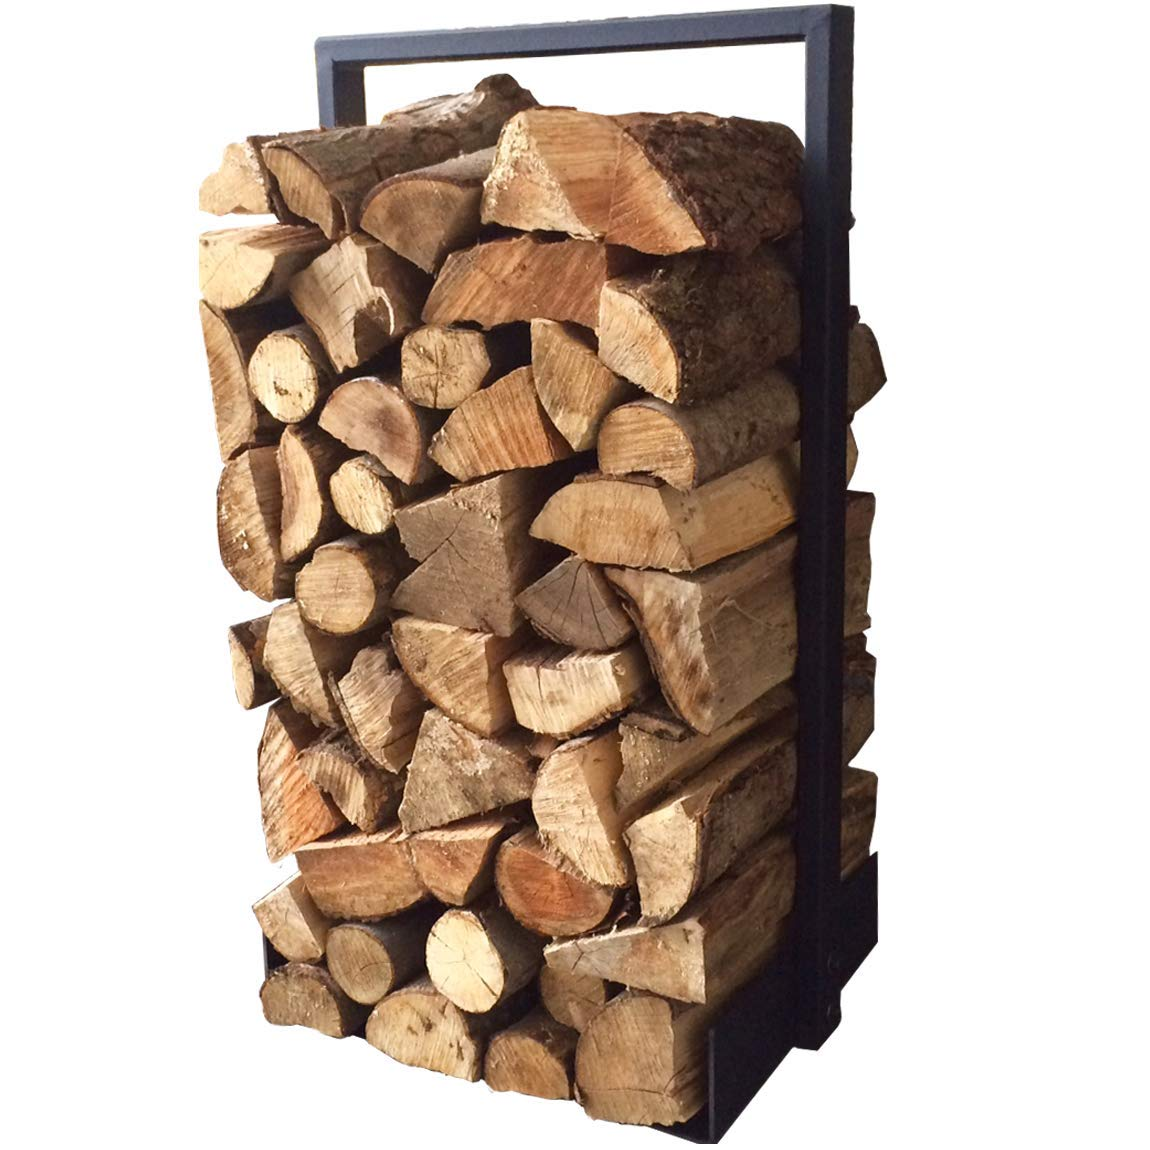 Firewood log rack for home fire place decoration indoor outdoor modern and rustic style Black Hand Made in North America